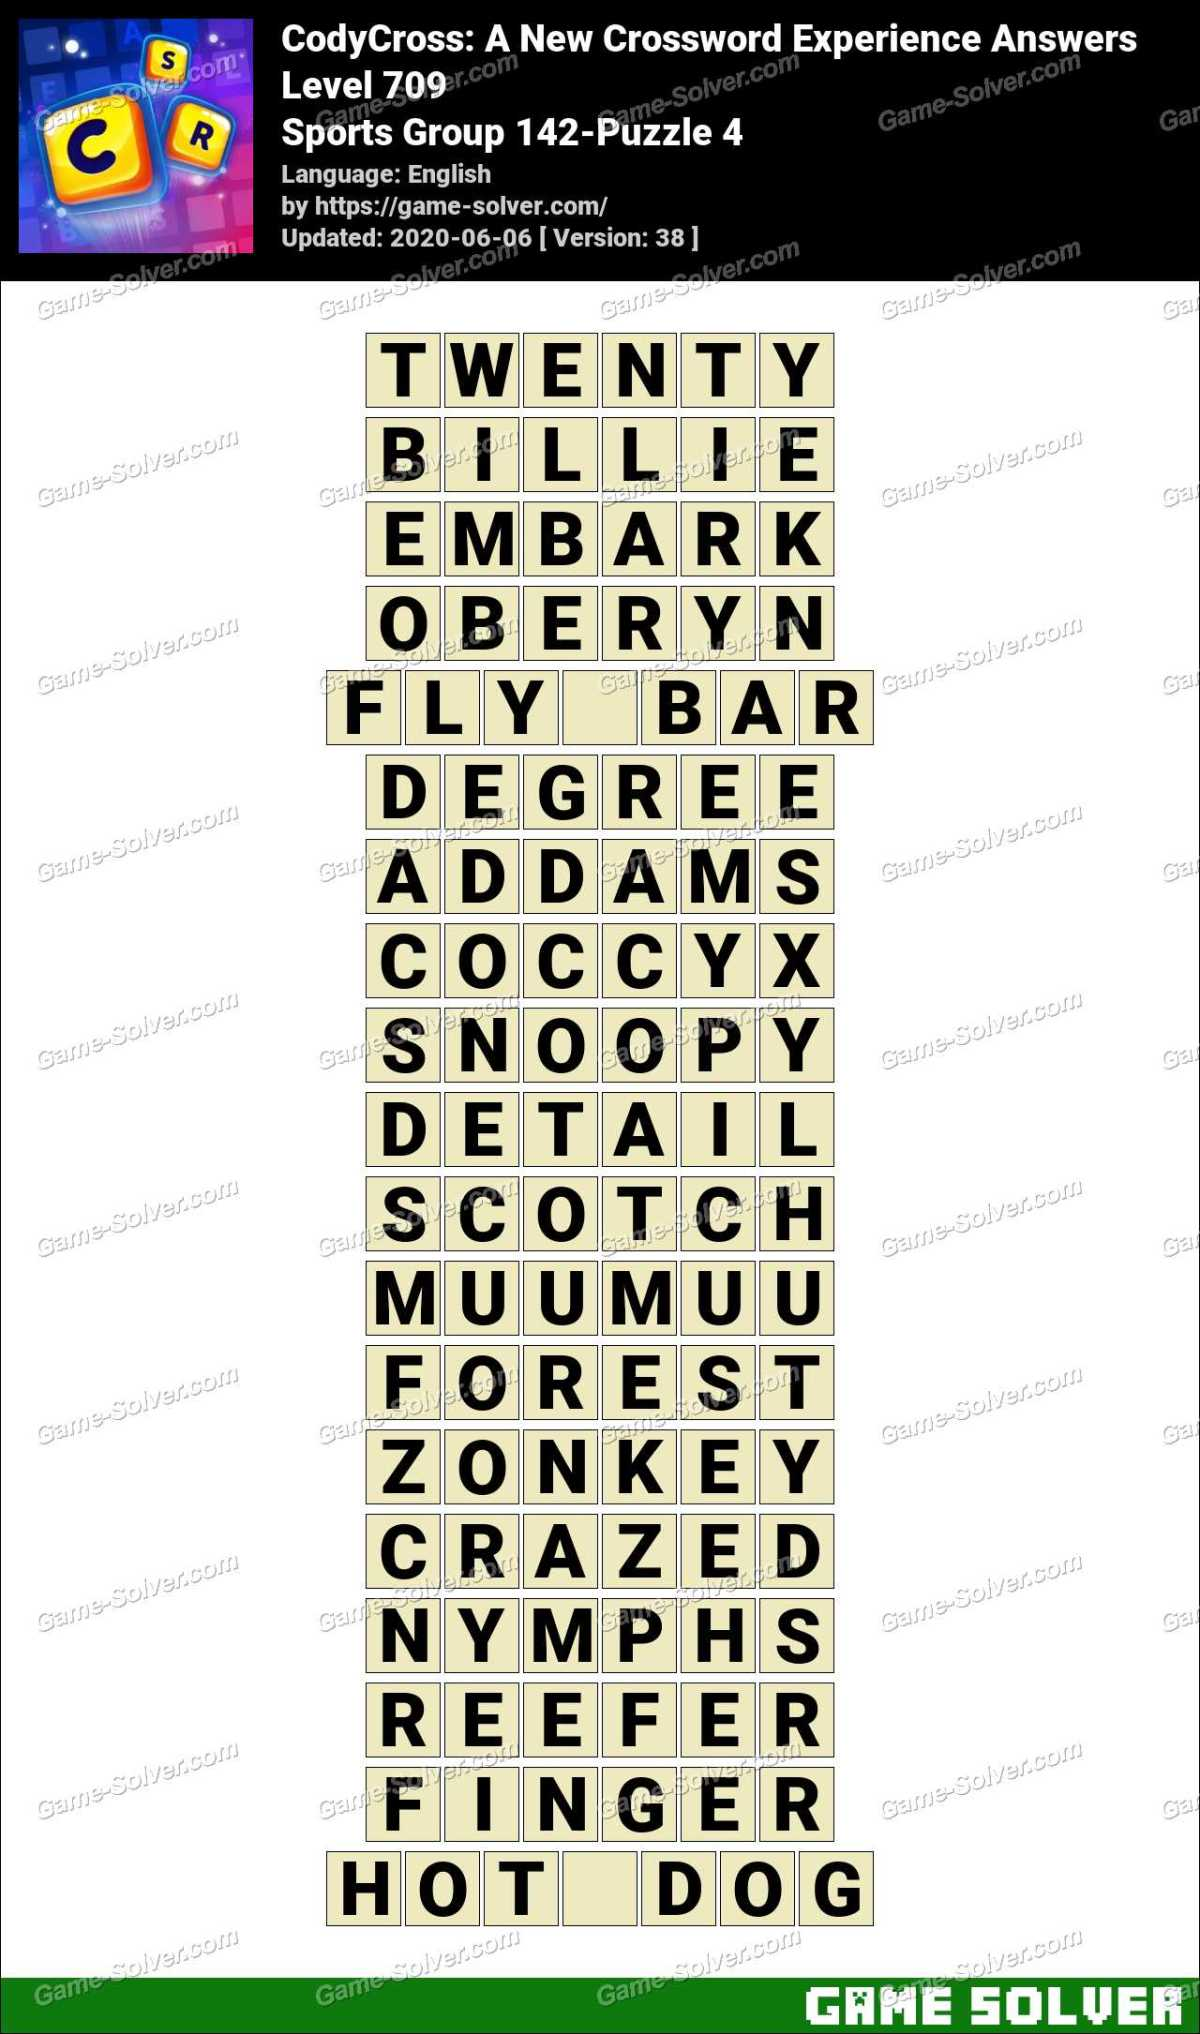 CodyCross Sports Group 142-Puzzle 4 Answers